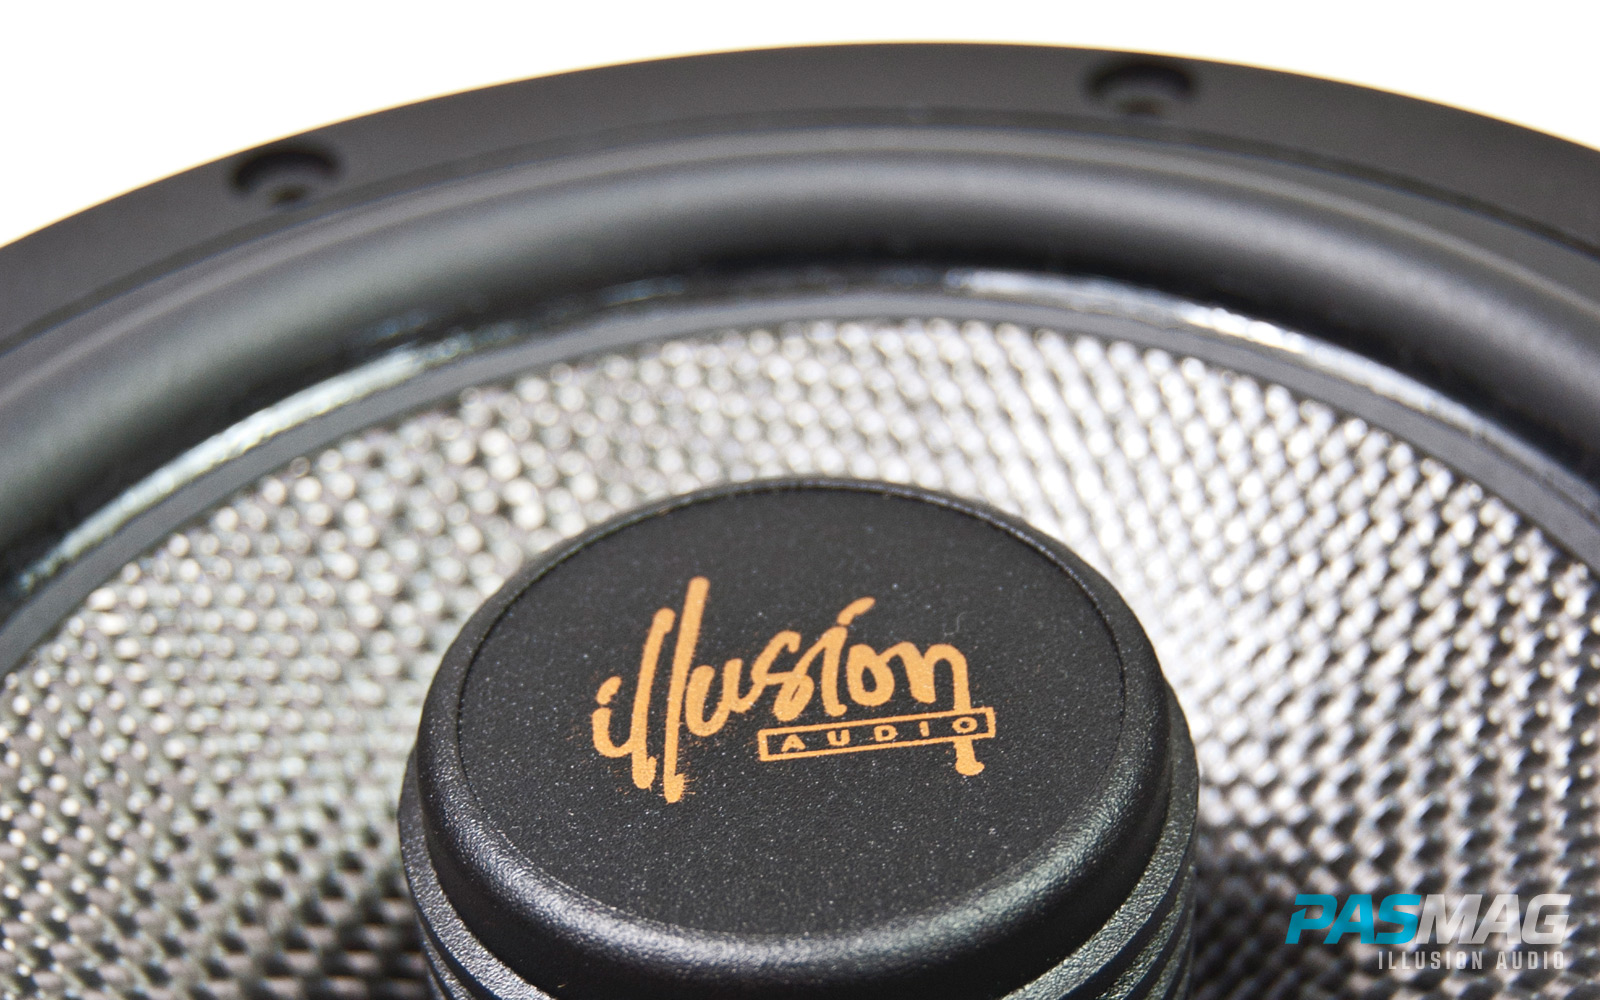 Illusion Audio C8b PASMAG